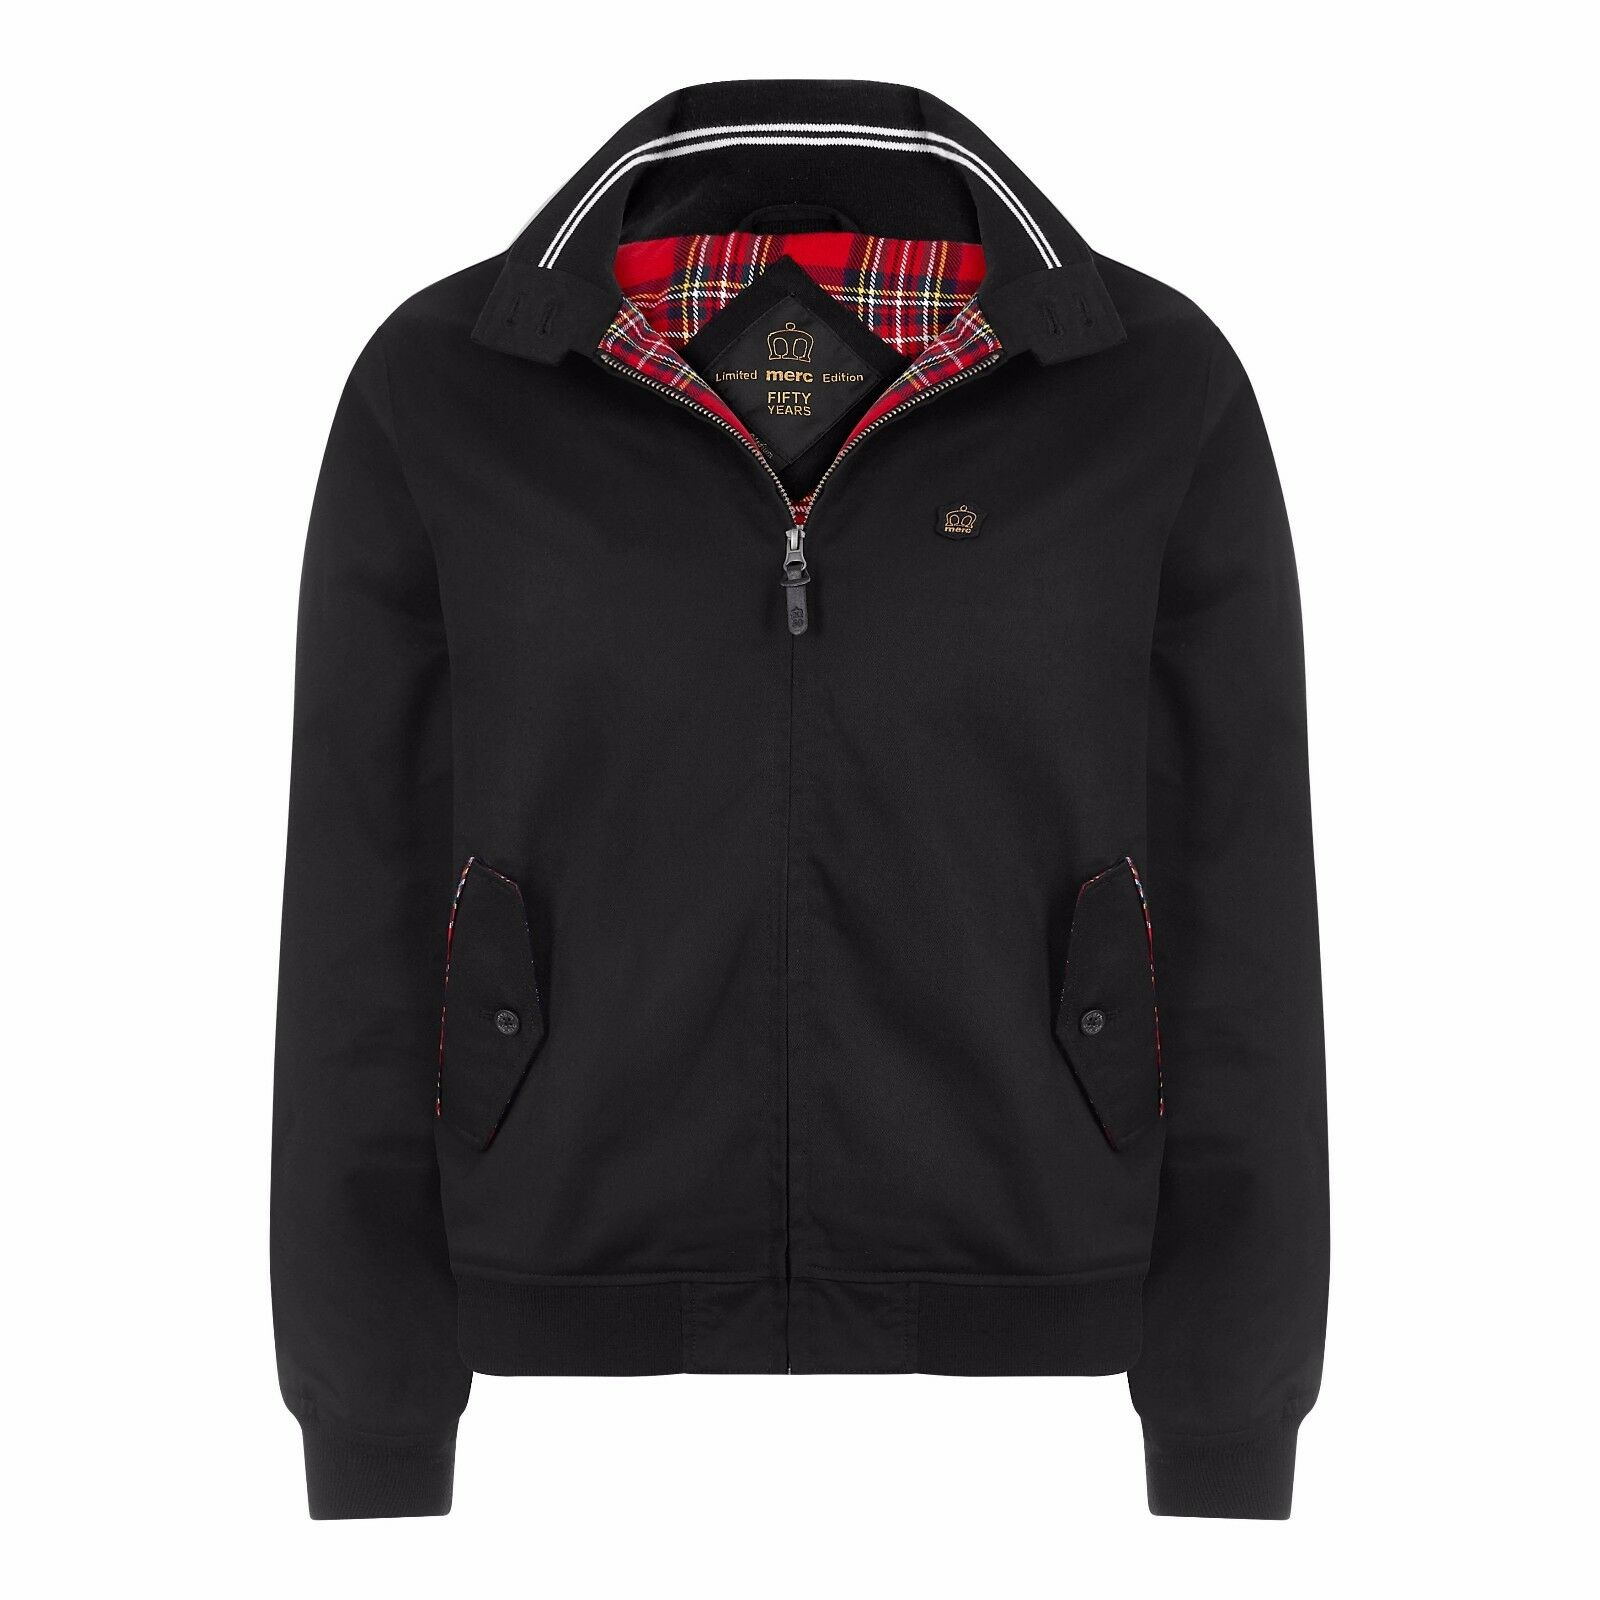 LIMITED Edition ANNIVERSARIO 50TH ANNIVERSARIO Edition Merc London Harrington Giacca-Nero e036ef